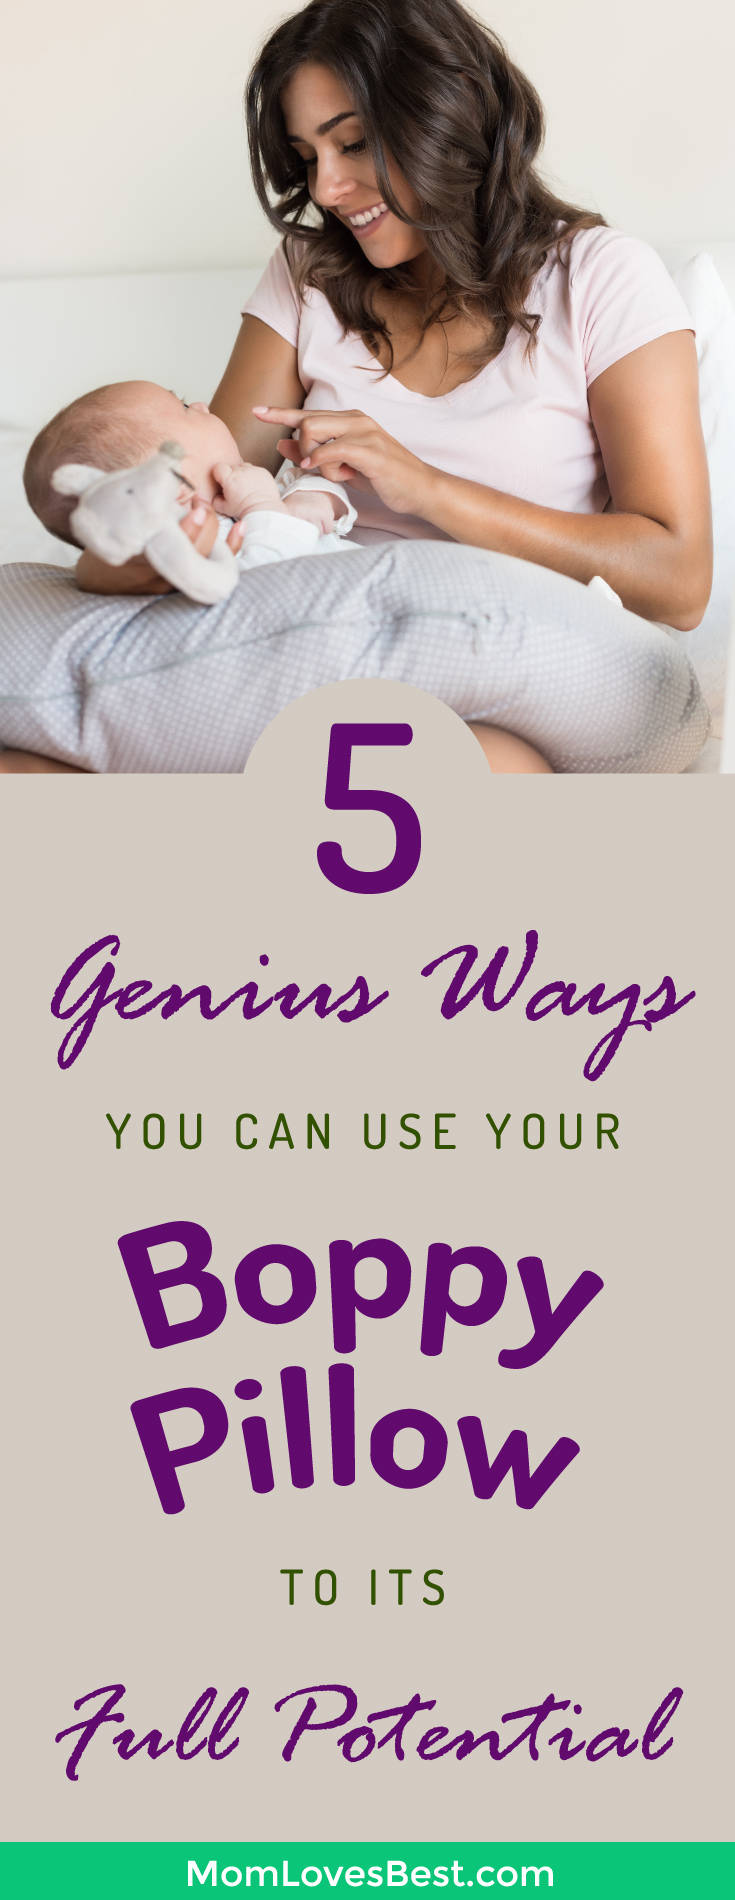 How to Use a Boppy Pillow for Breastfeeding Tummy Time  More